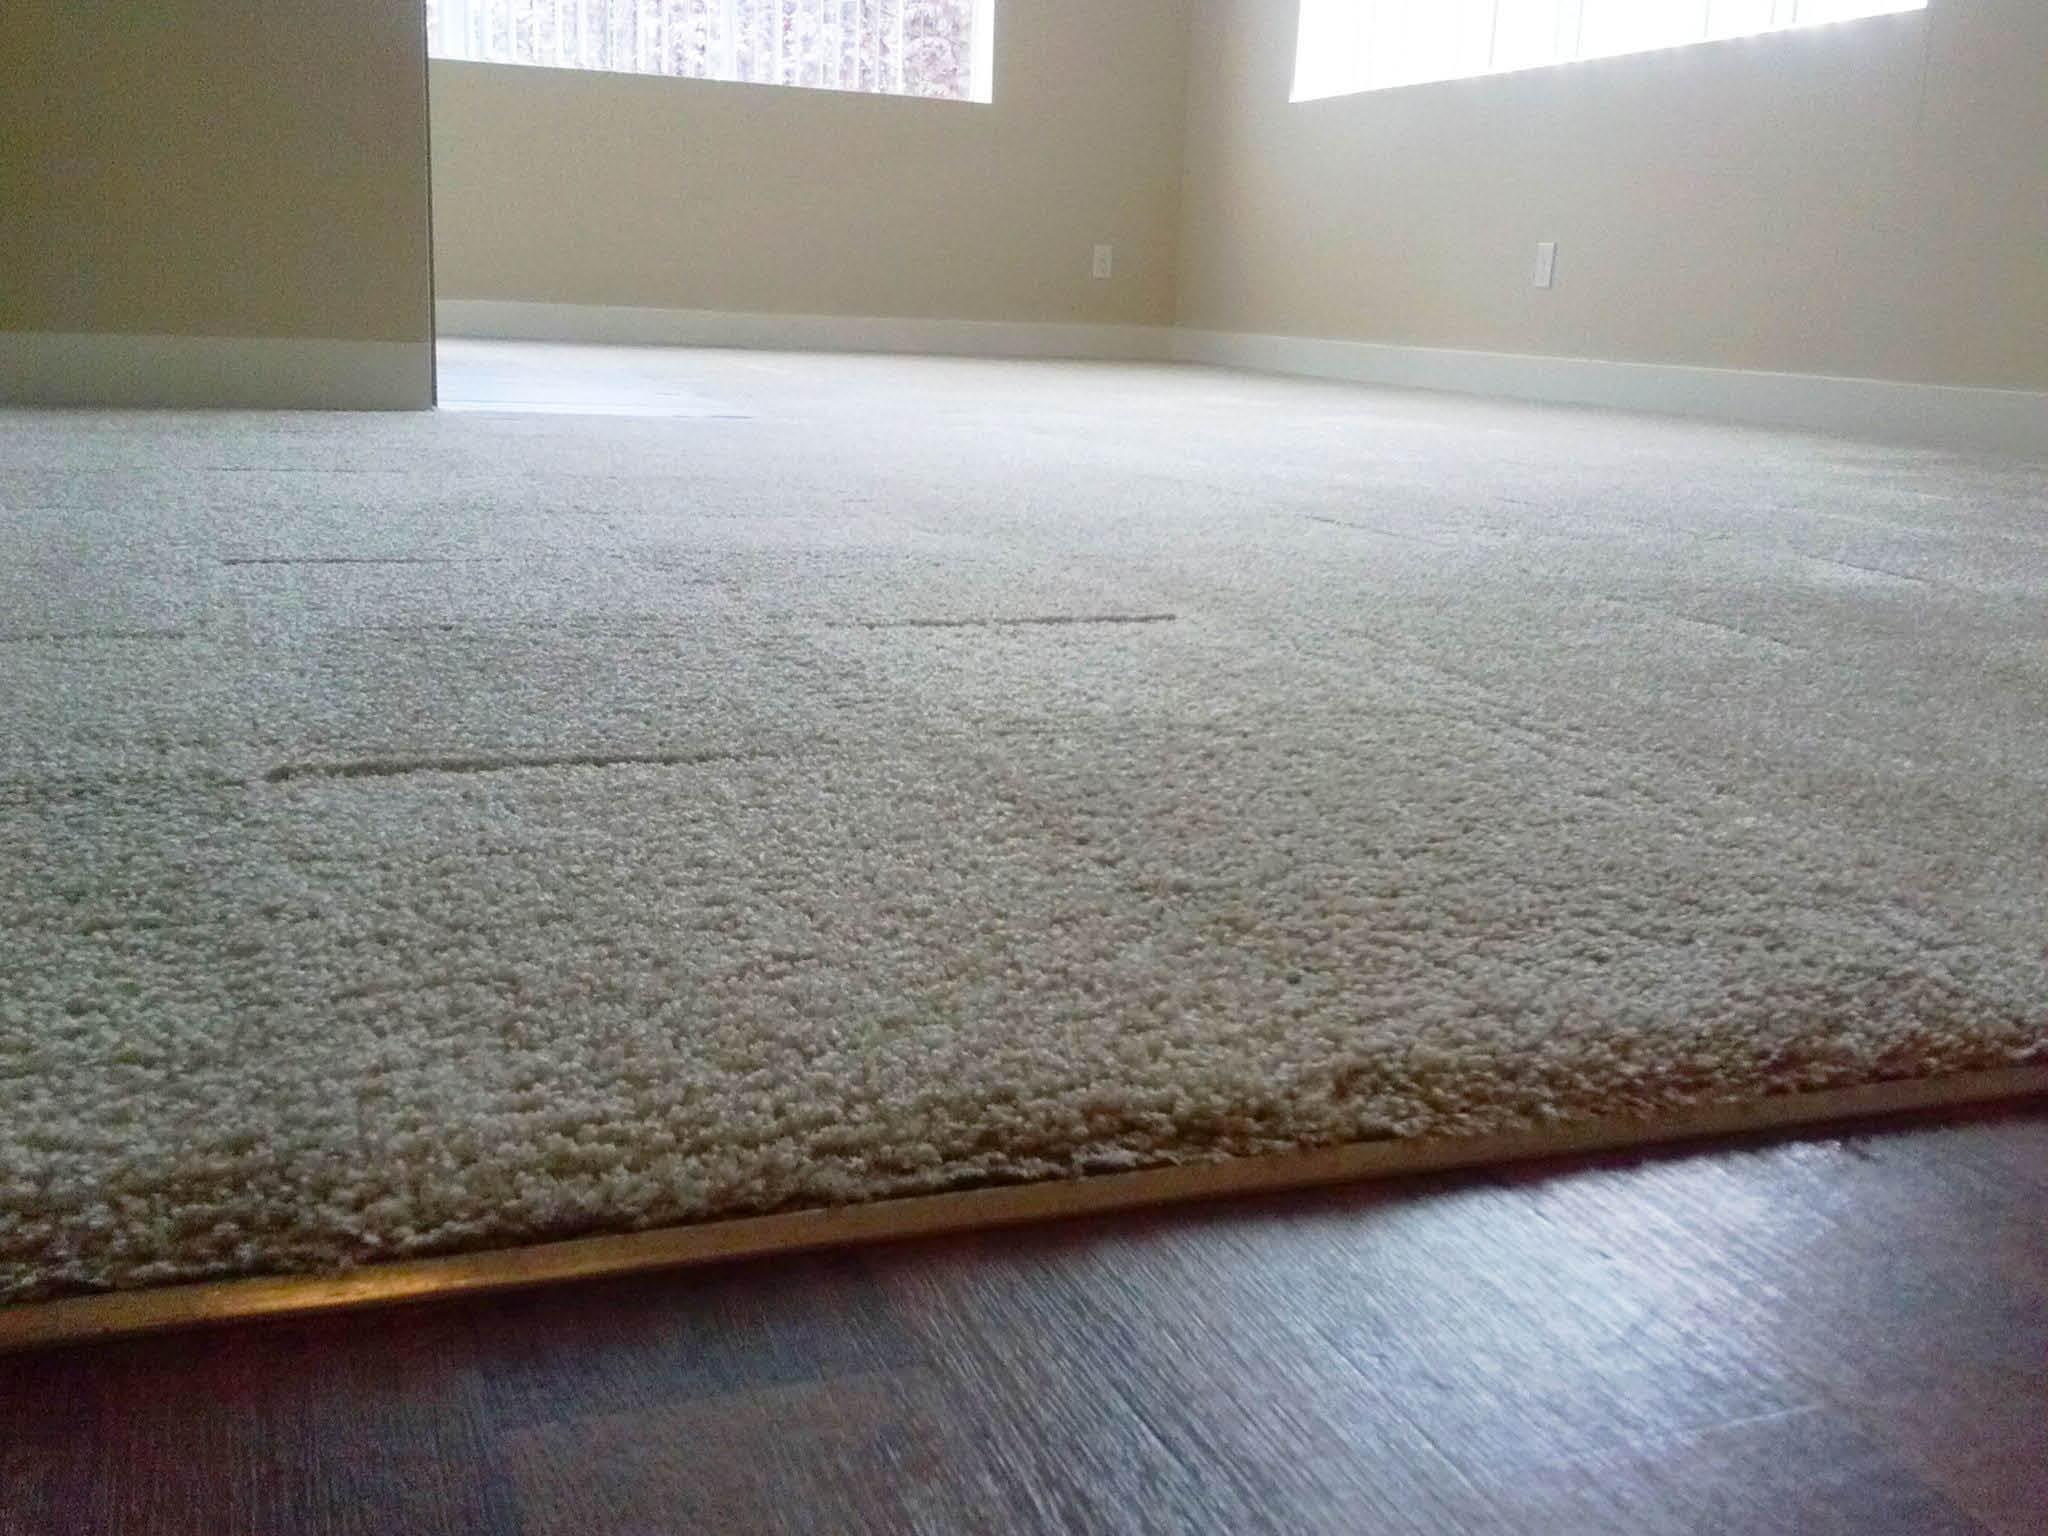 Sanchex Carpet Cleaning - Lynnwood, WA - carpet cleaners - professional carpet cleaning - carpet installation - carpet repiar